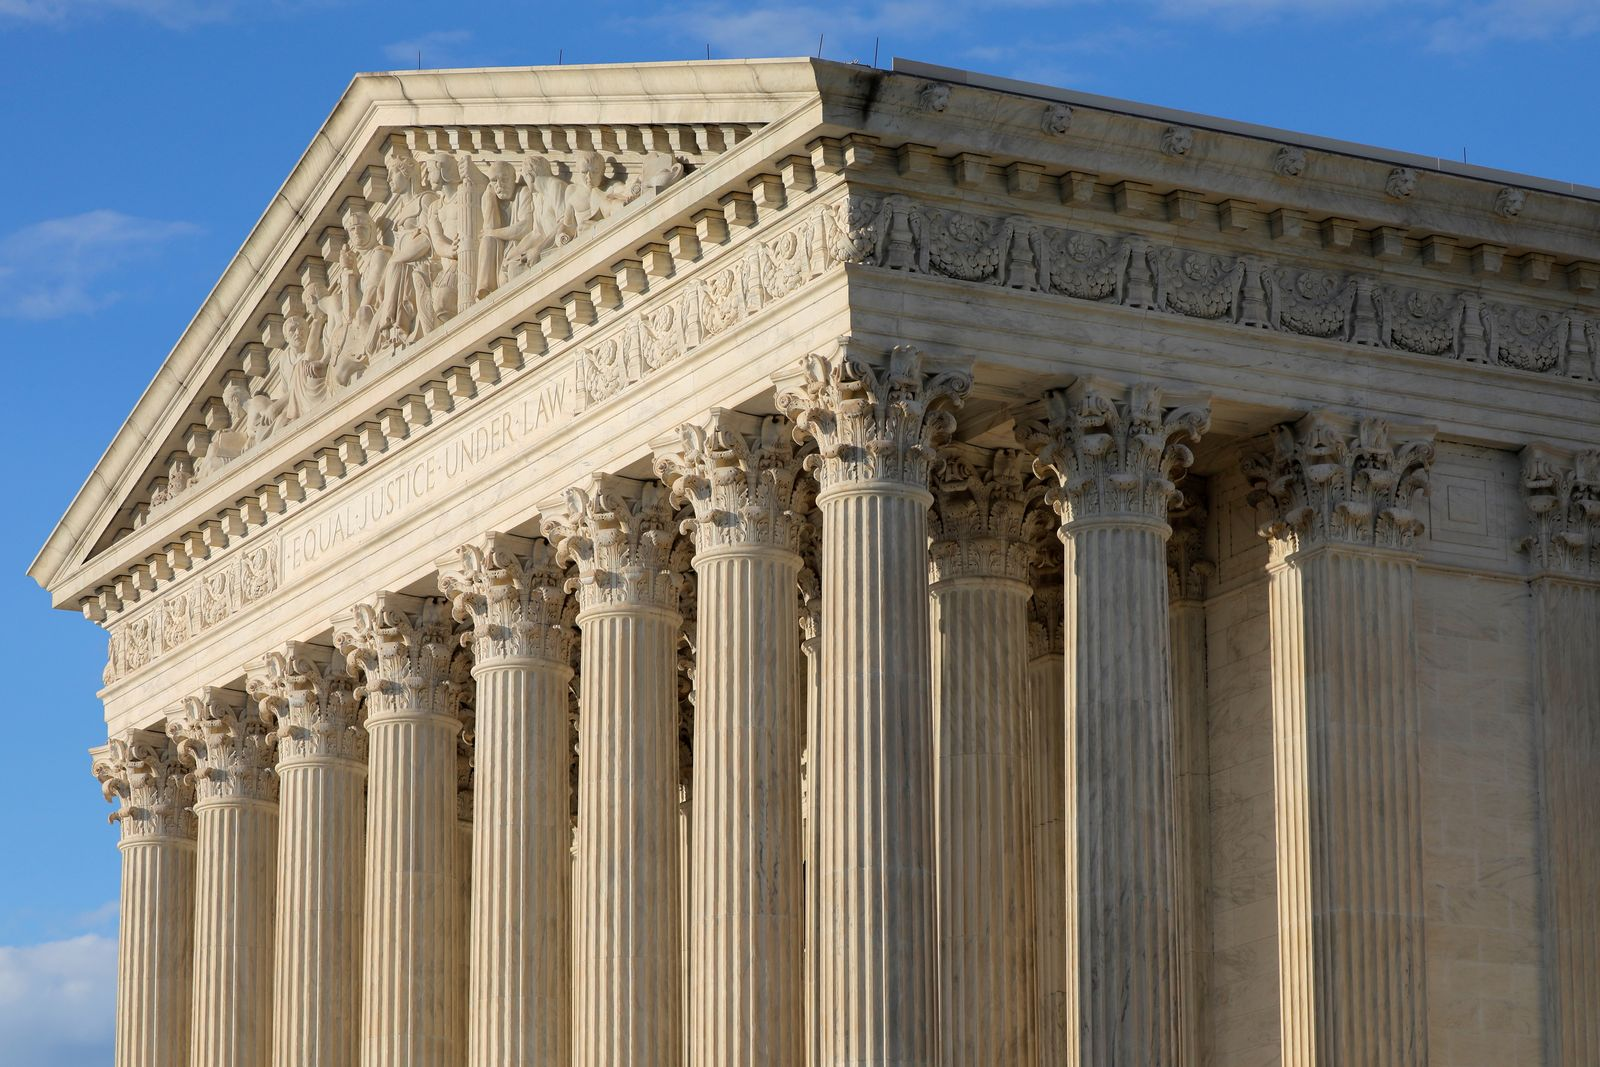 The United States Supreme Court Building's facade is seen in Washington, D.C.